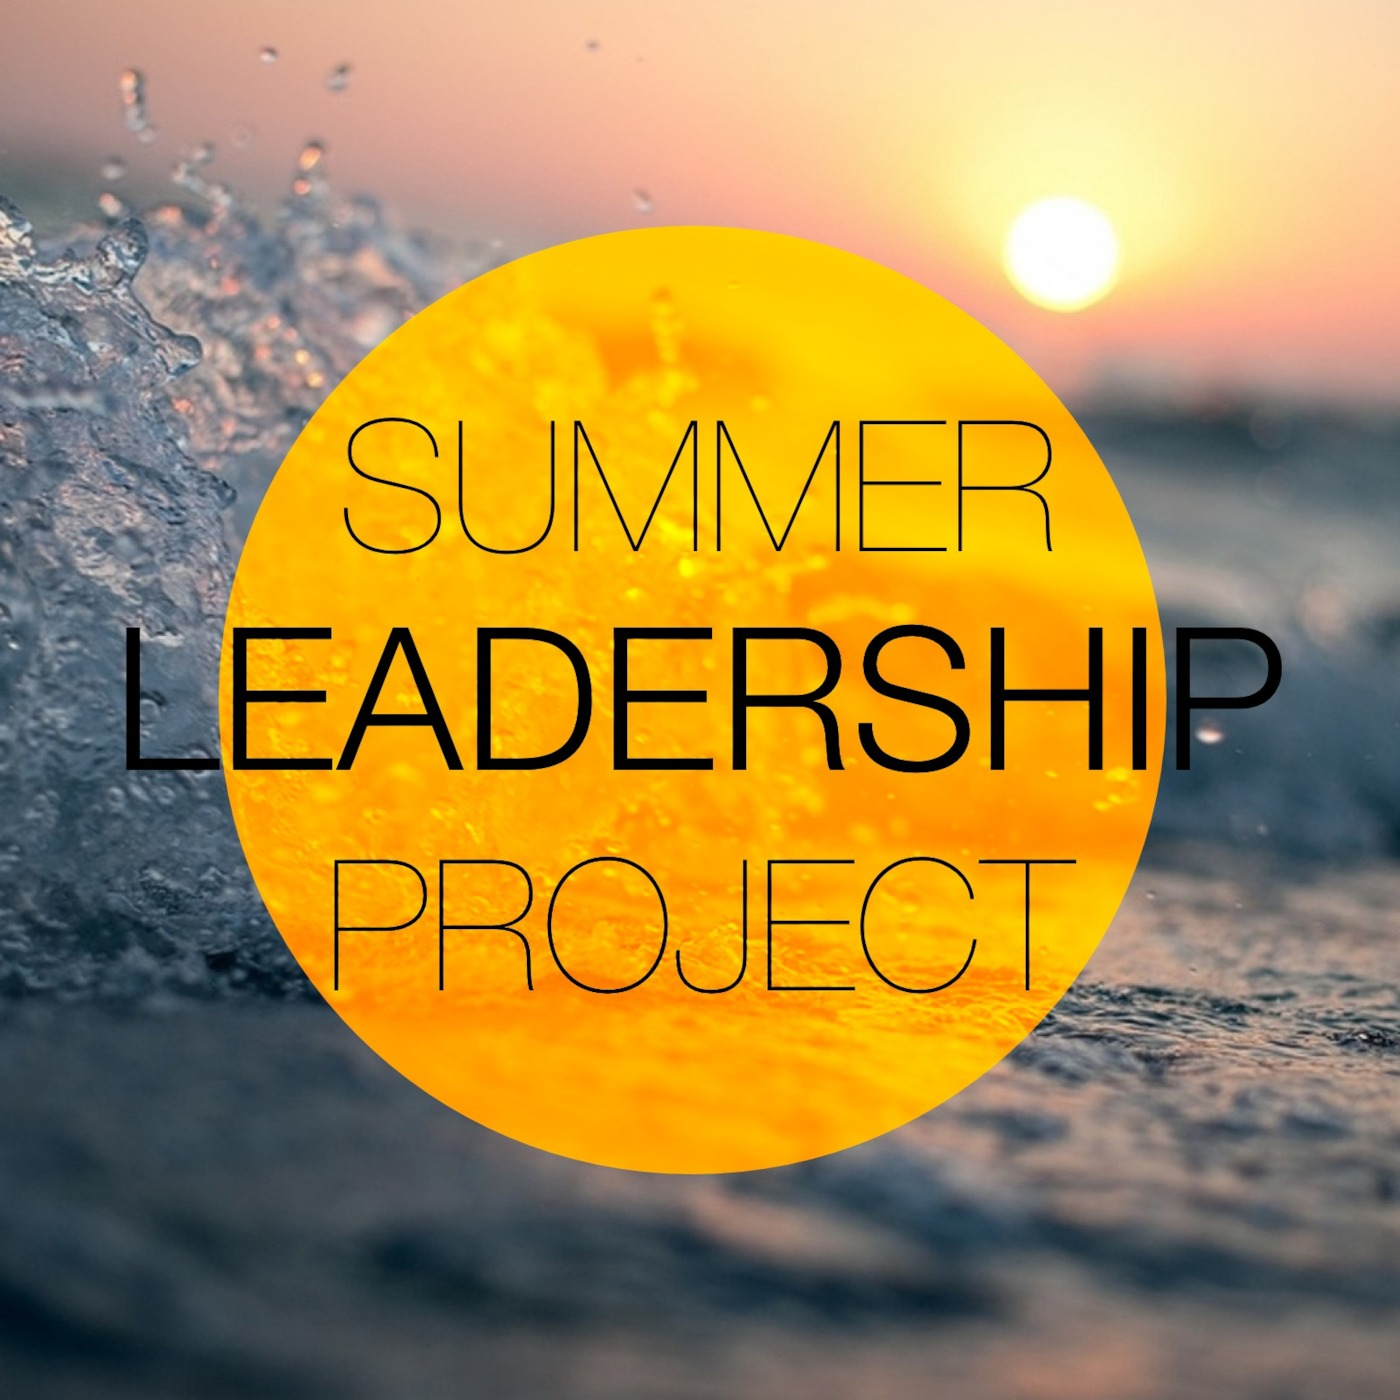 Summer Leadership Project